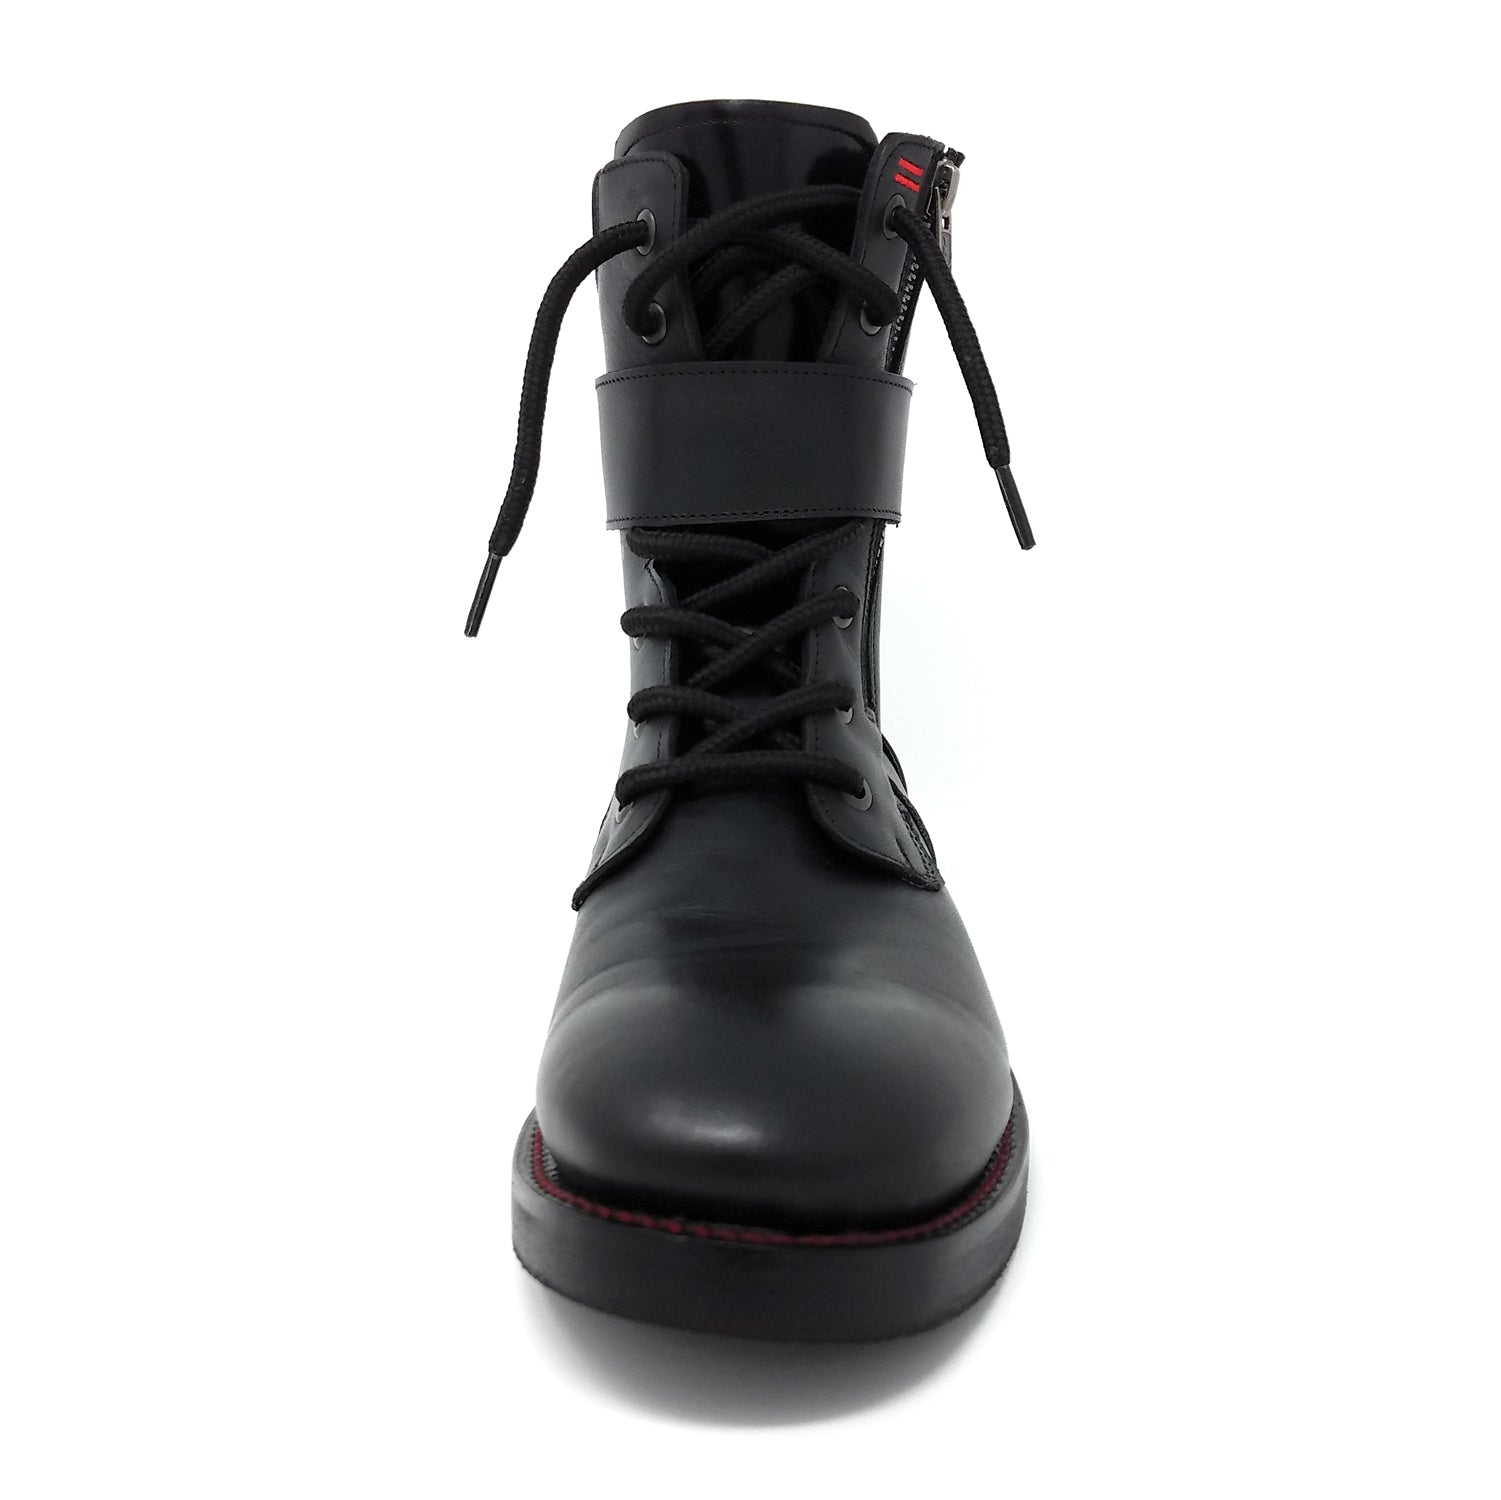 The Combat H8 Boots (Pre-Order Now) - NiK Kacy